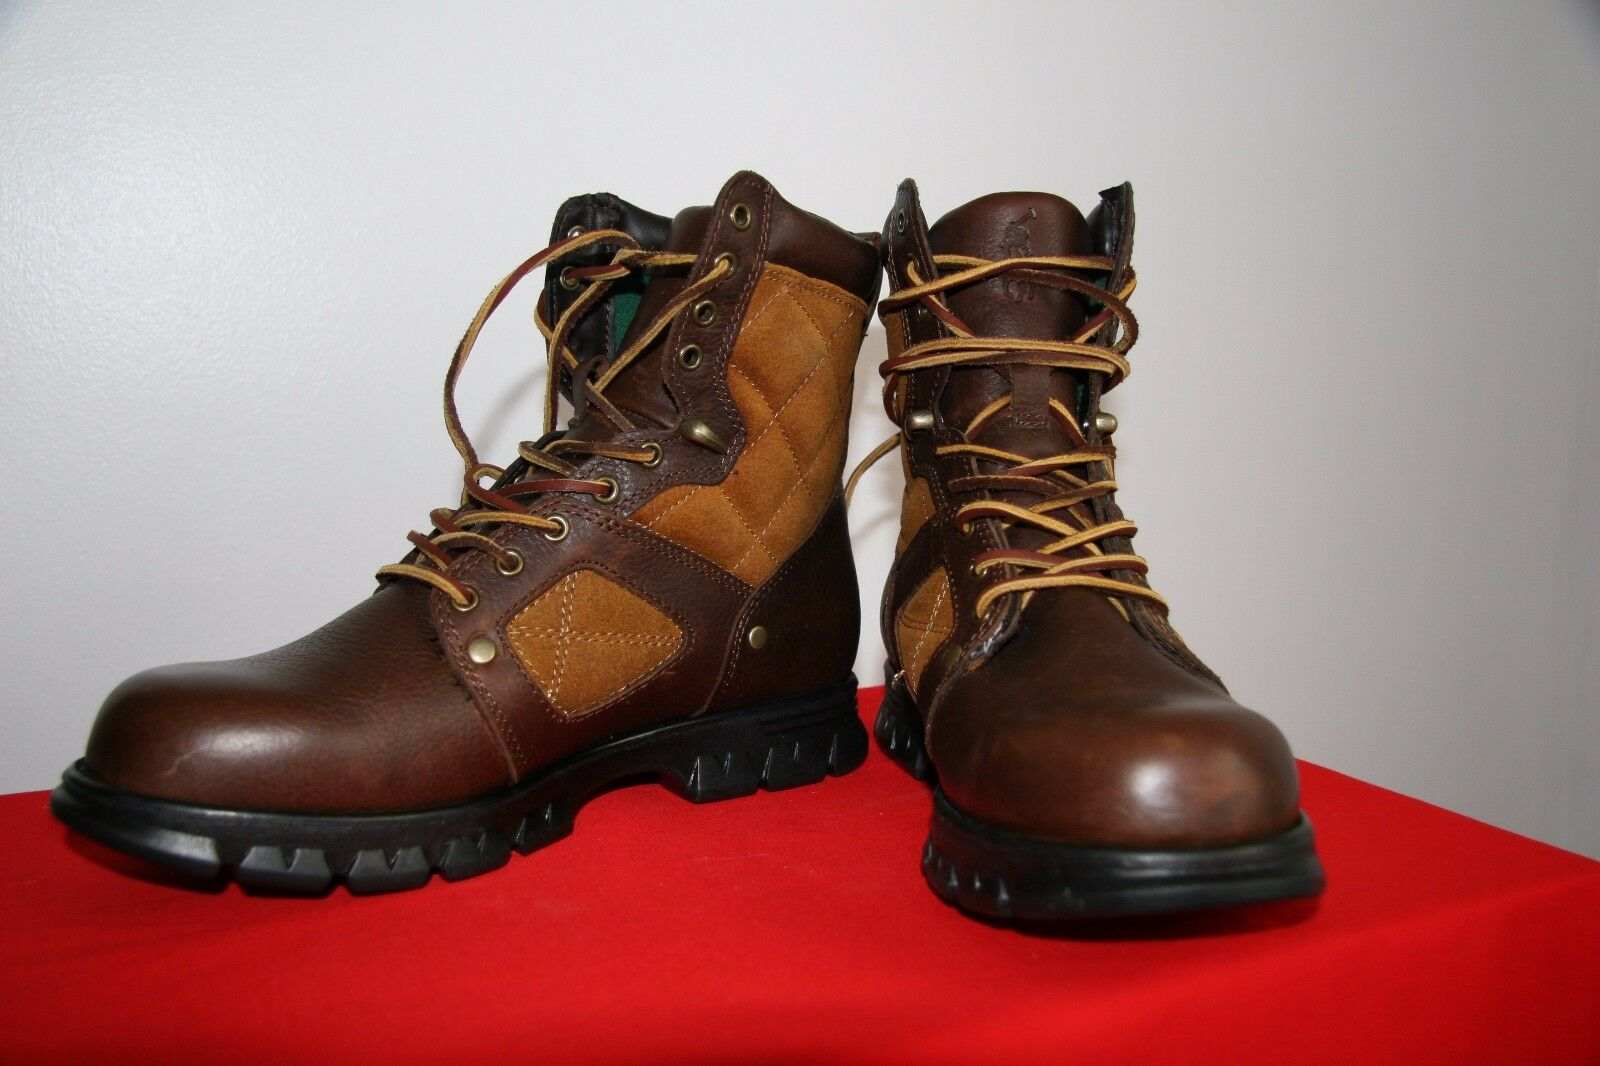 POLO NEW brown leather lace up HIKING BOOTS men's size 8D (women's size 10)